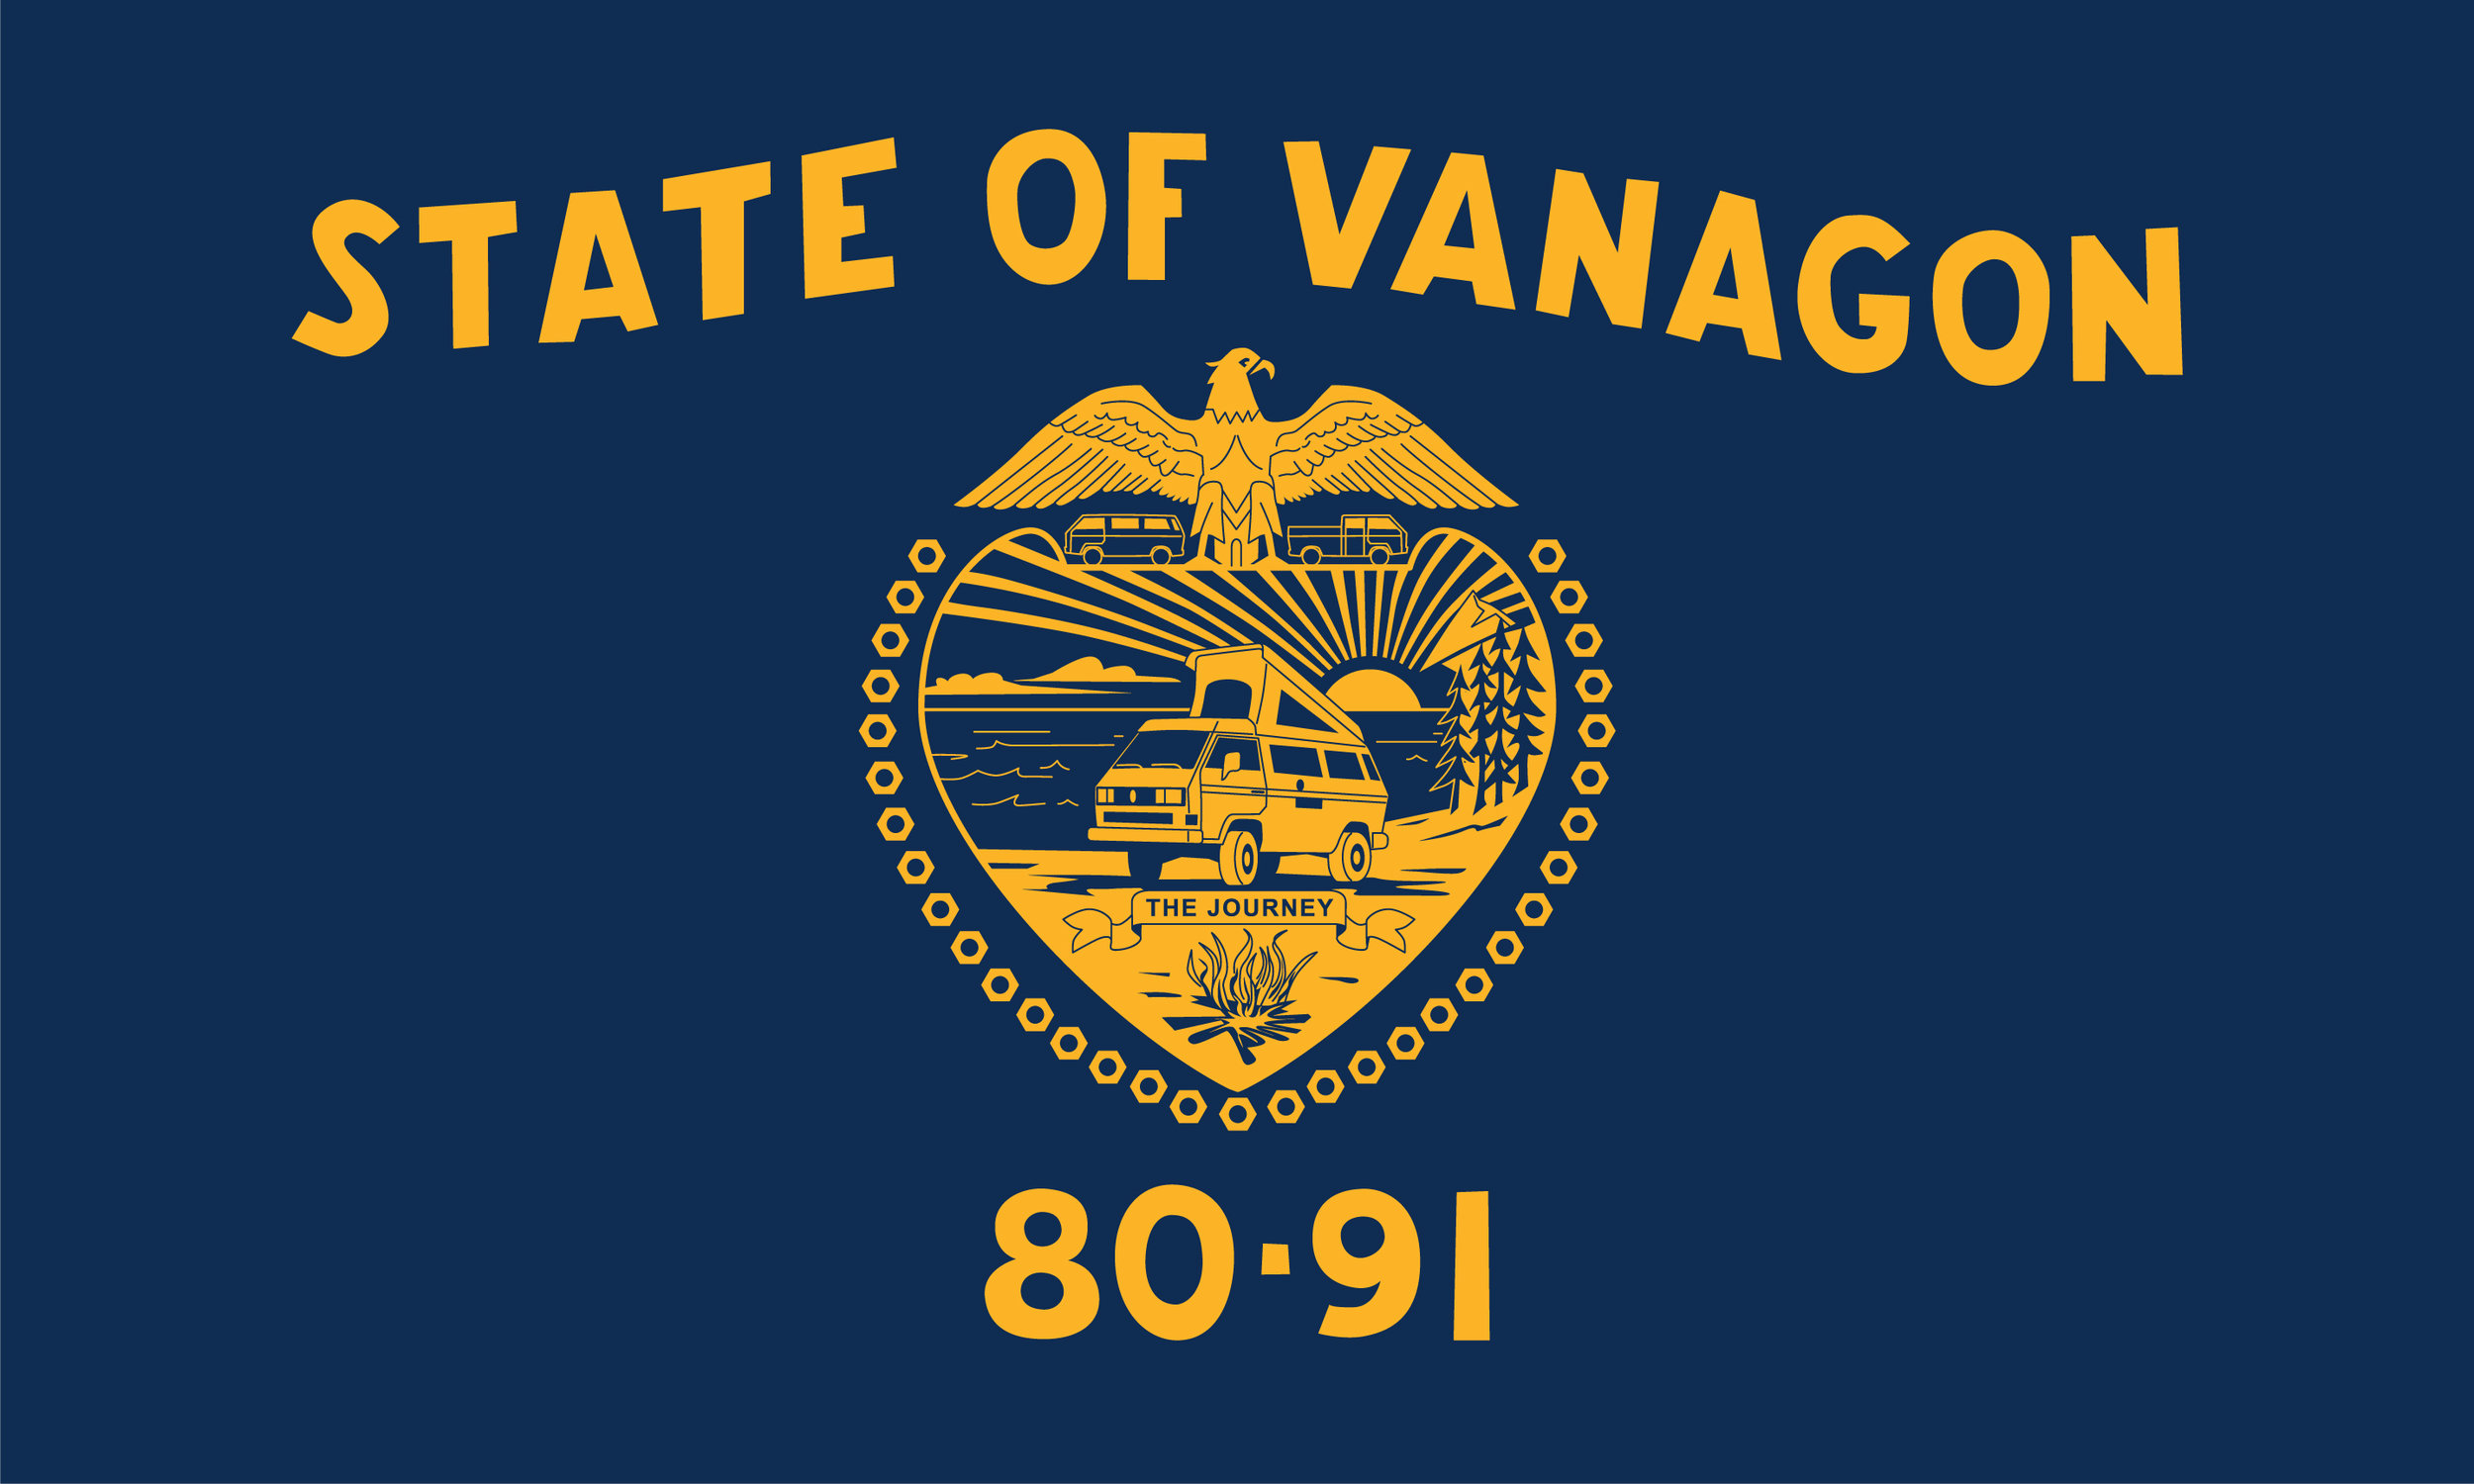 decal-state-of-vanagon-3x5-print.jpg